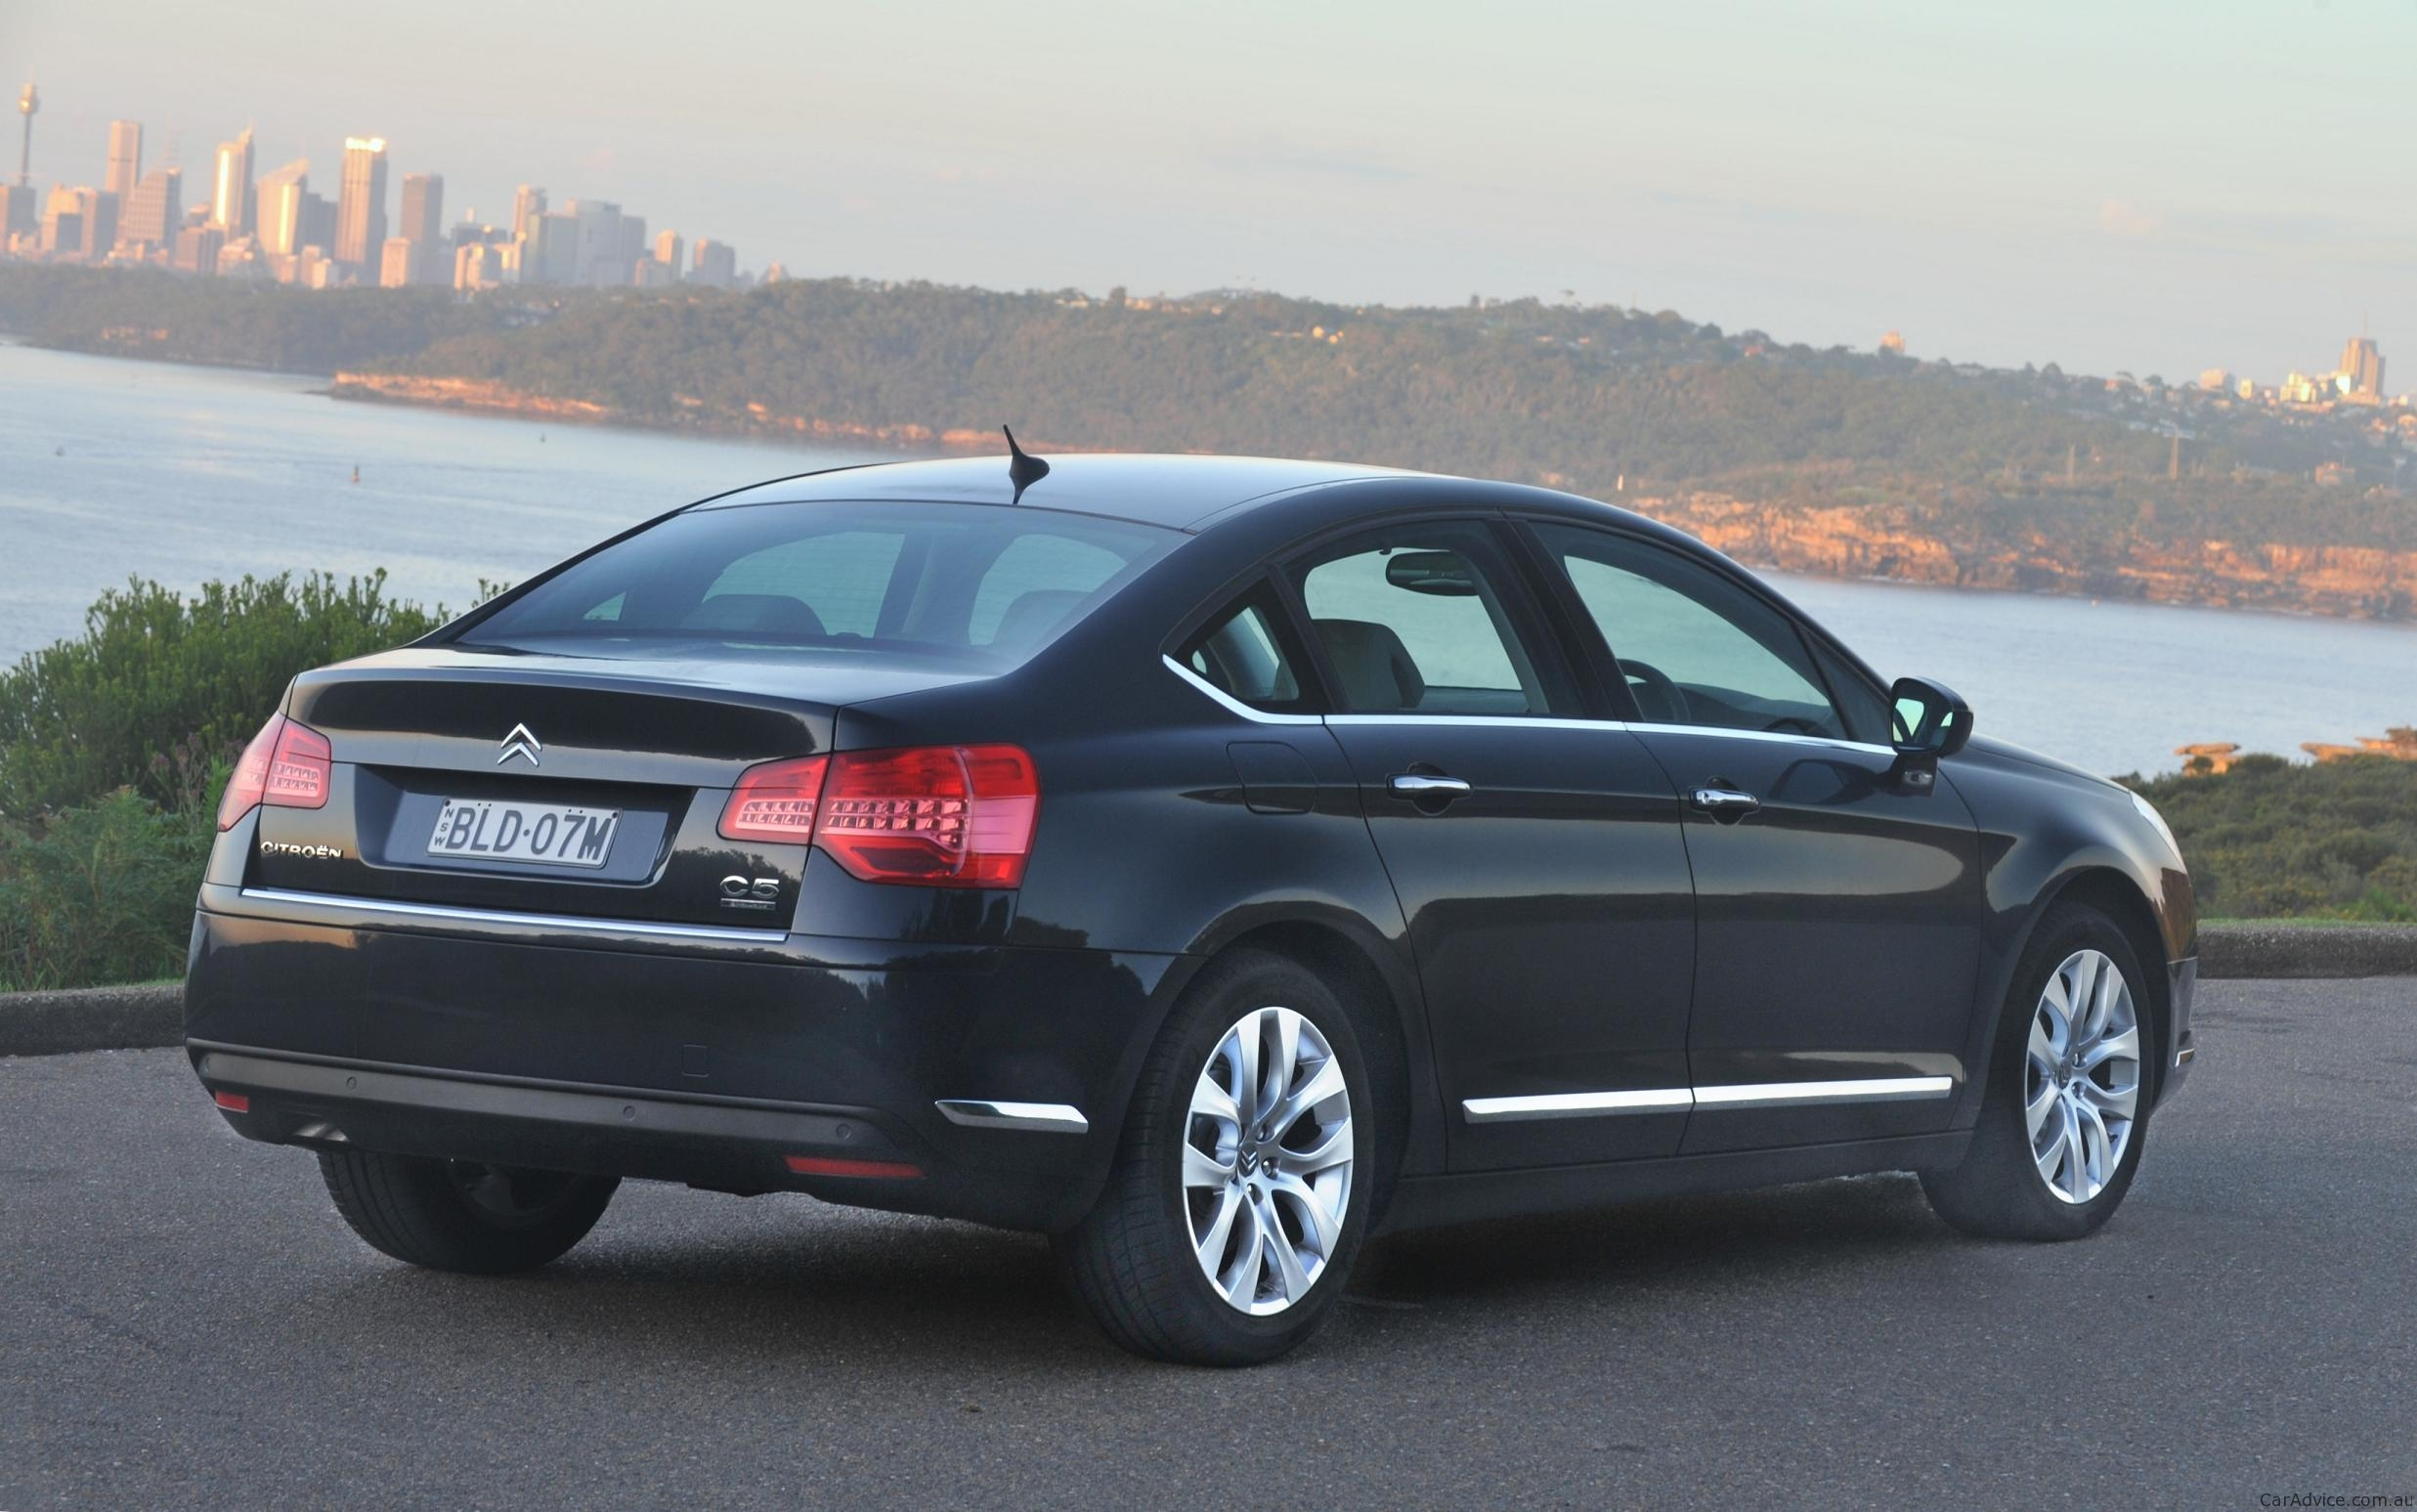 Home; » Car News » Citroen C5 HDi Exclusive-2 Citroen » Citroen C5